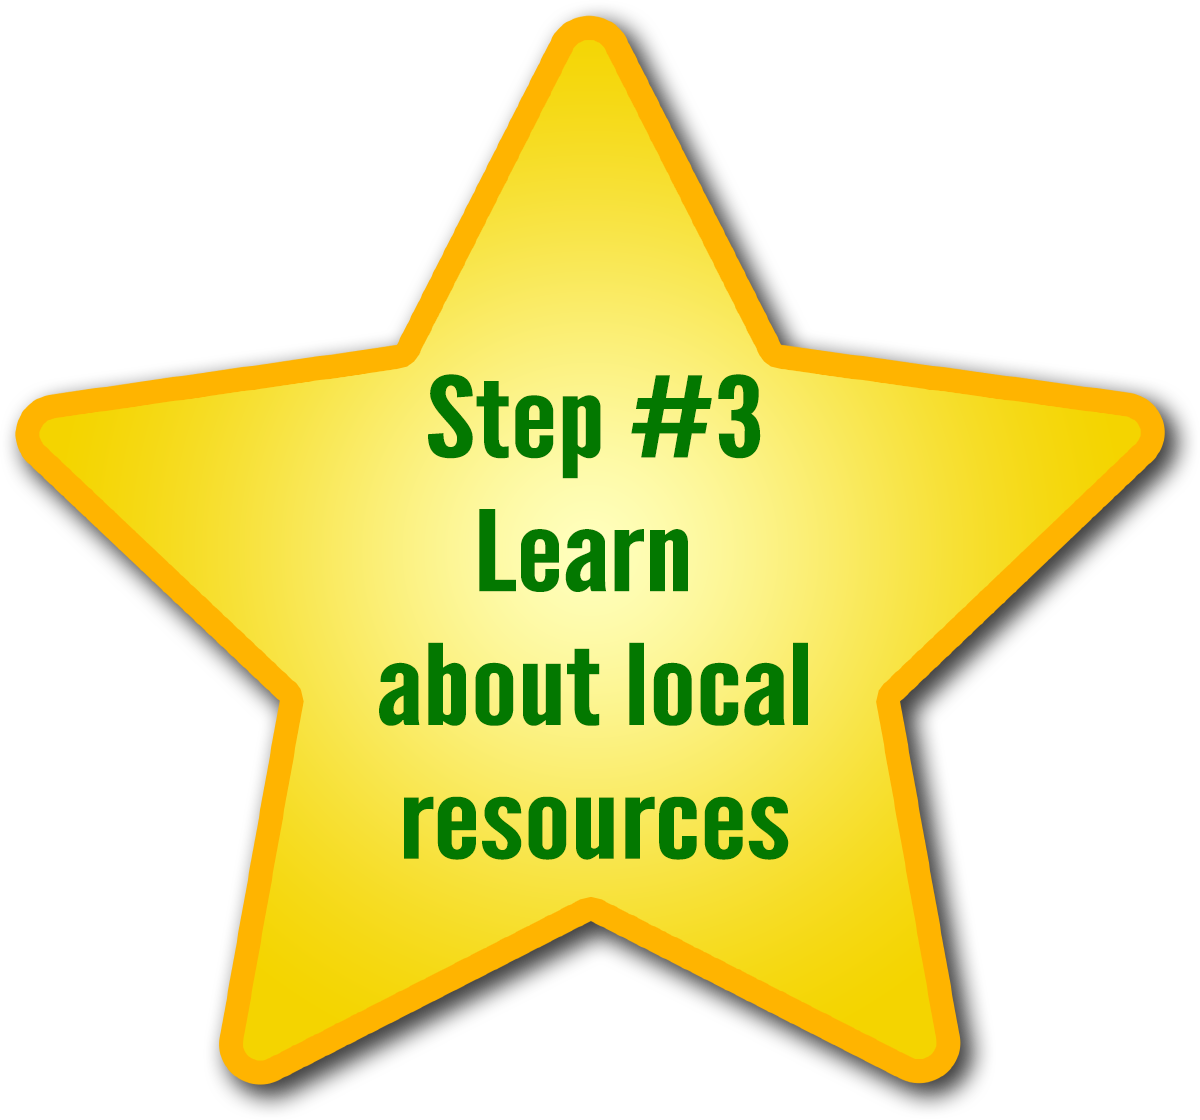 Step 3 - Learn about local resources